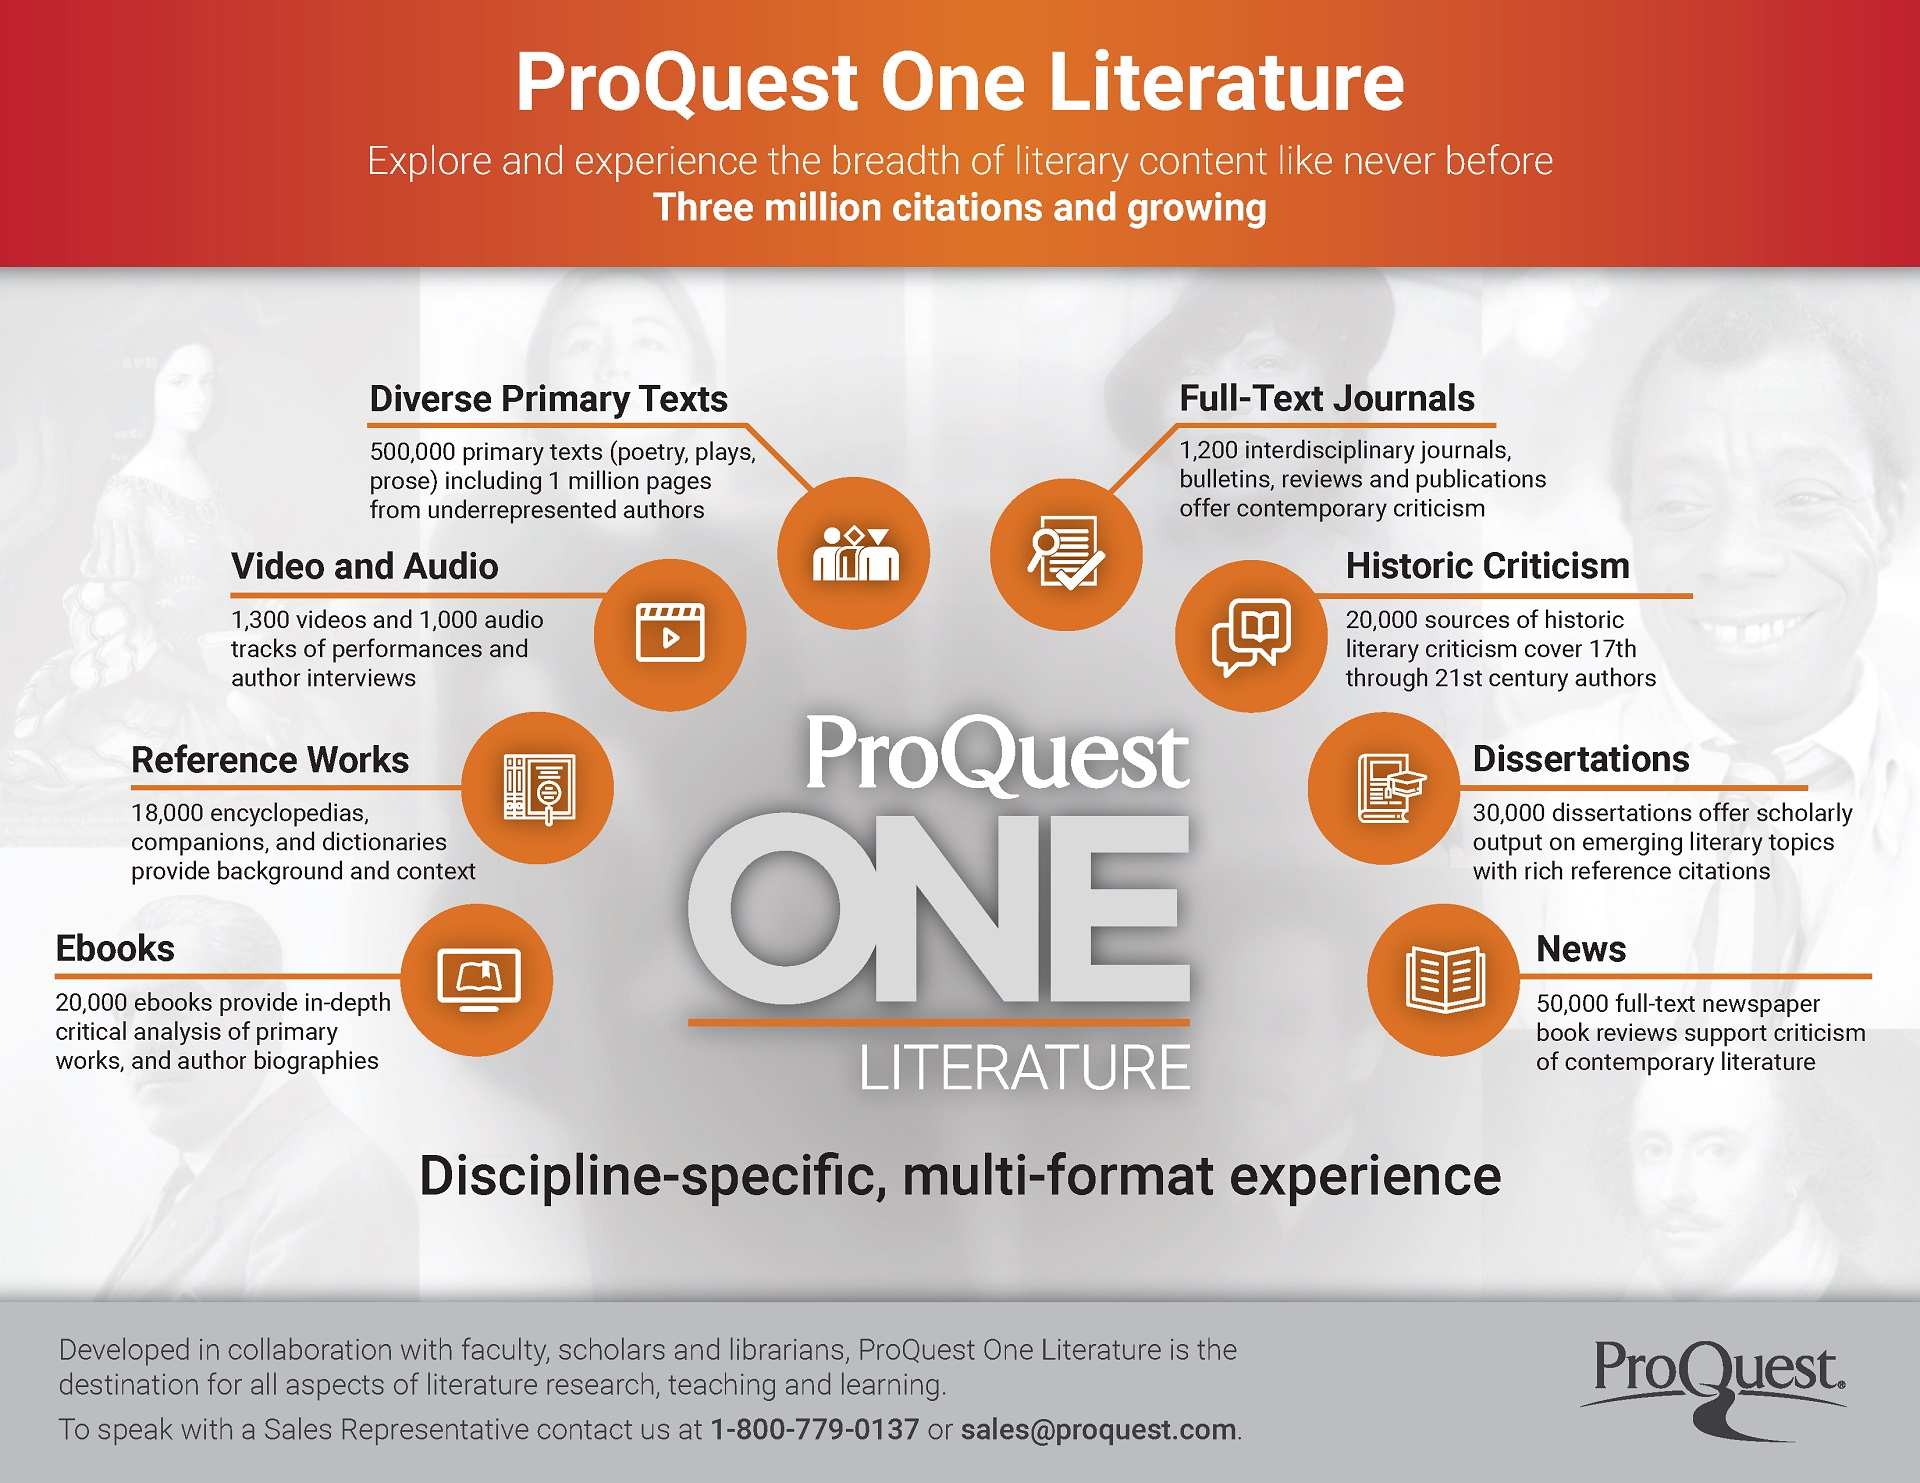 ProQuest One Literature